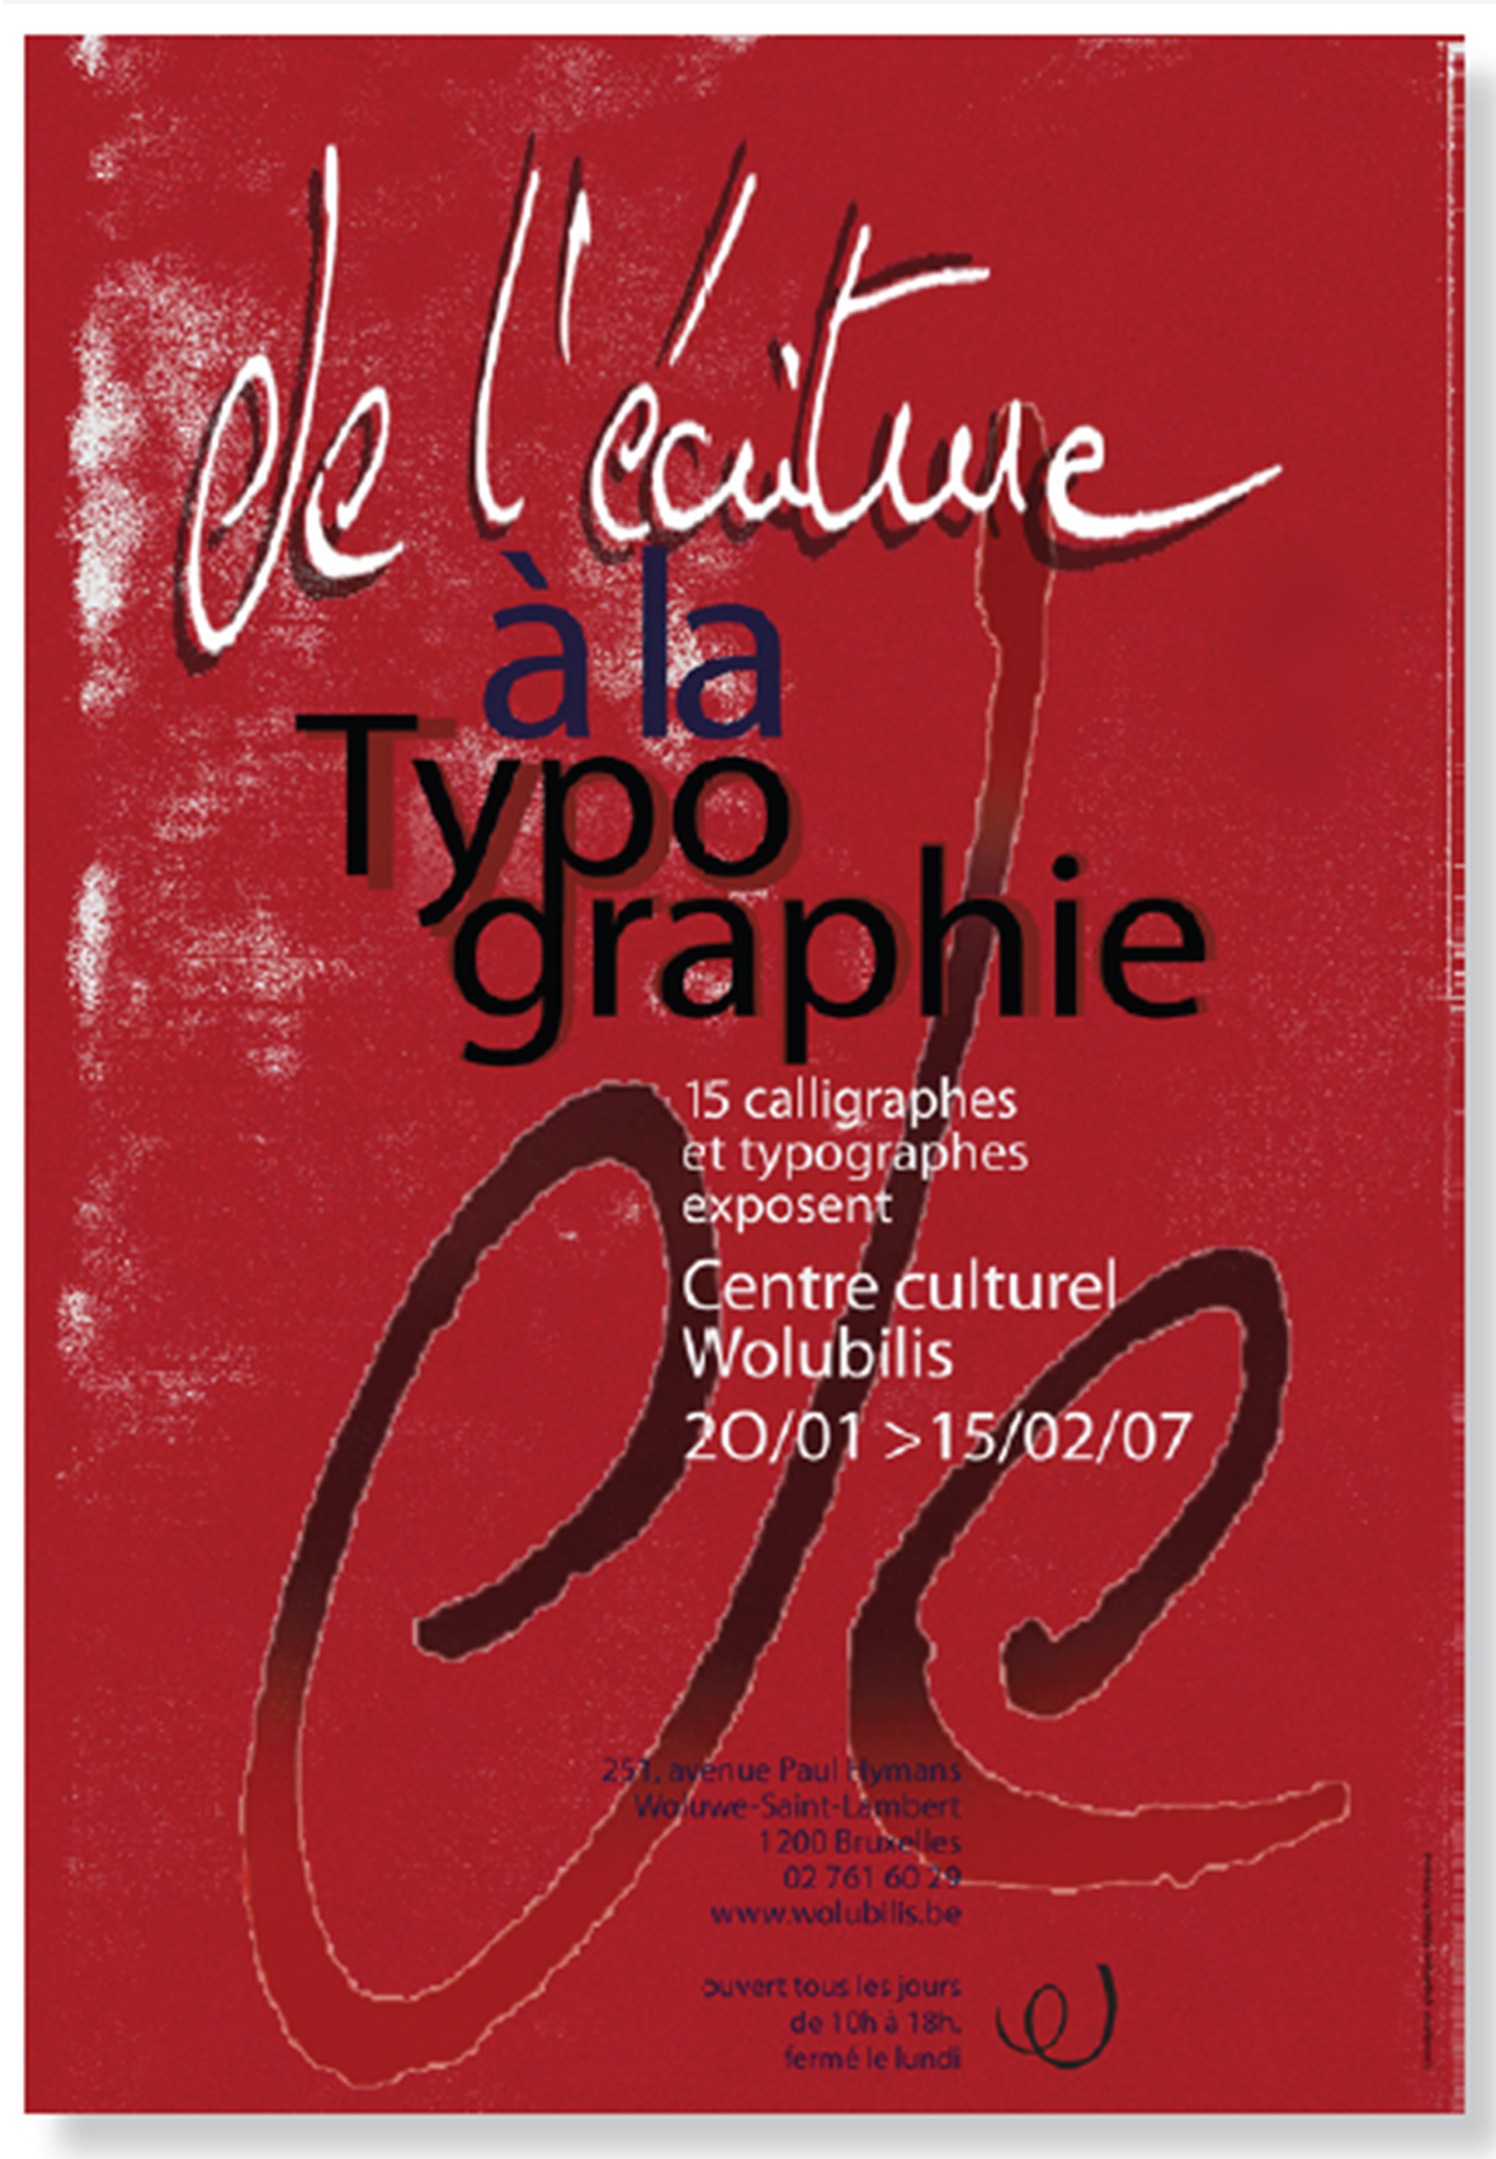 Typographic poster A2 2007